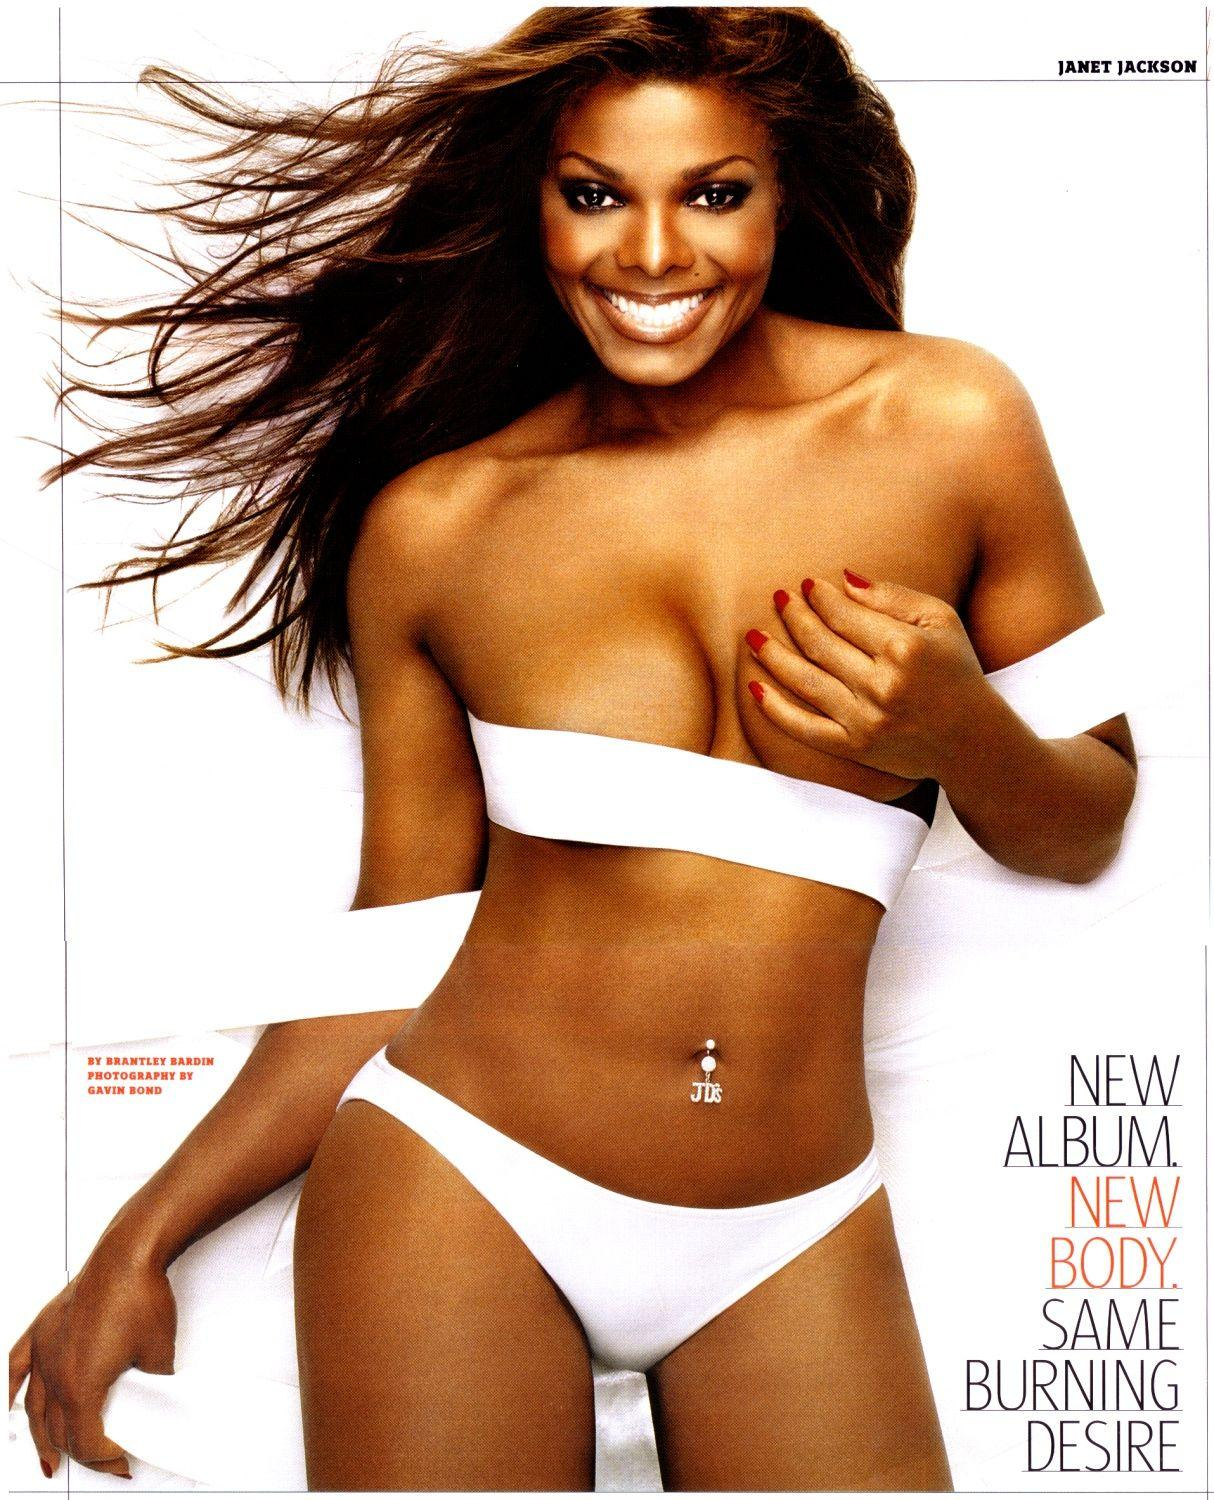 Janet jackson nude free pics, clseup pussy holes pic